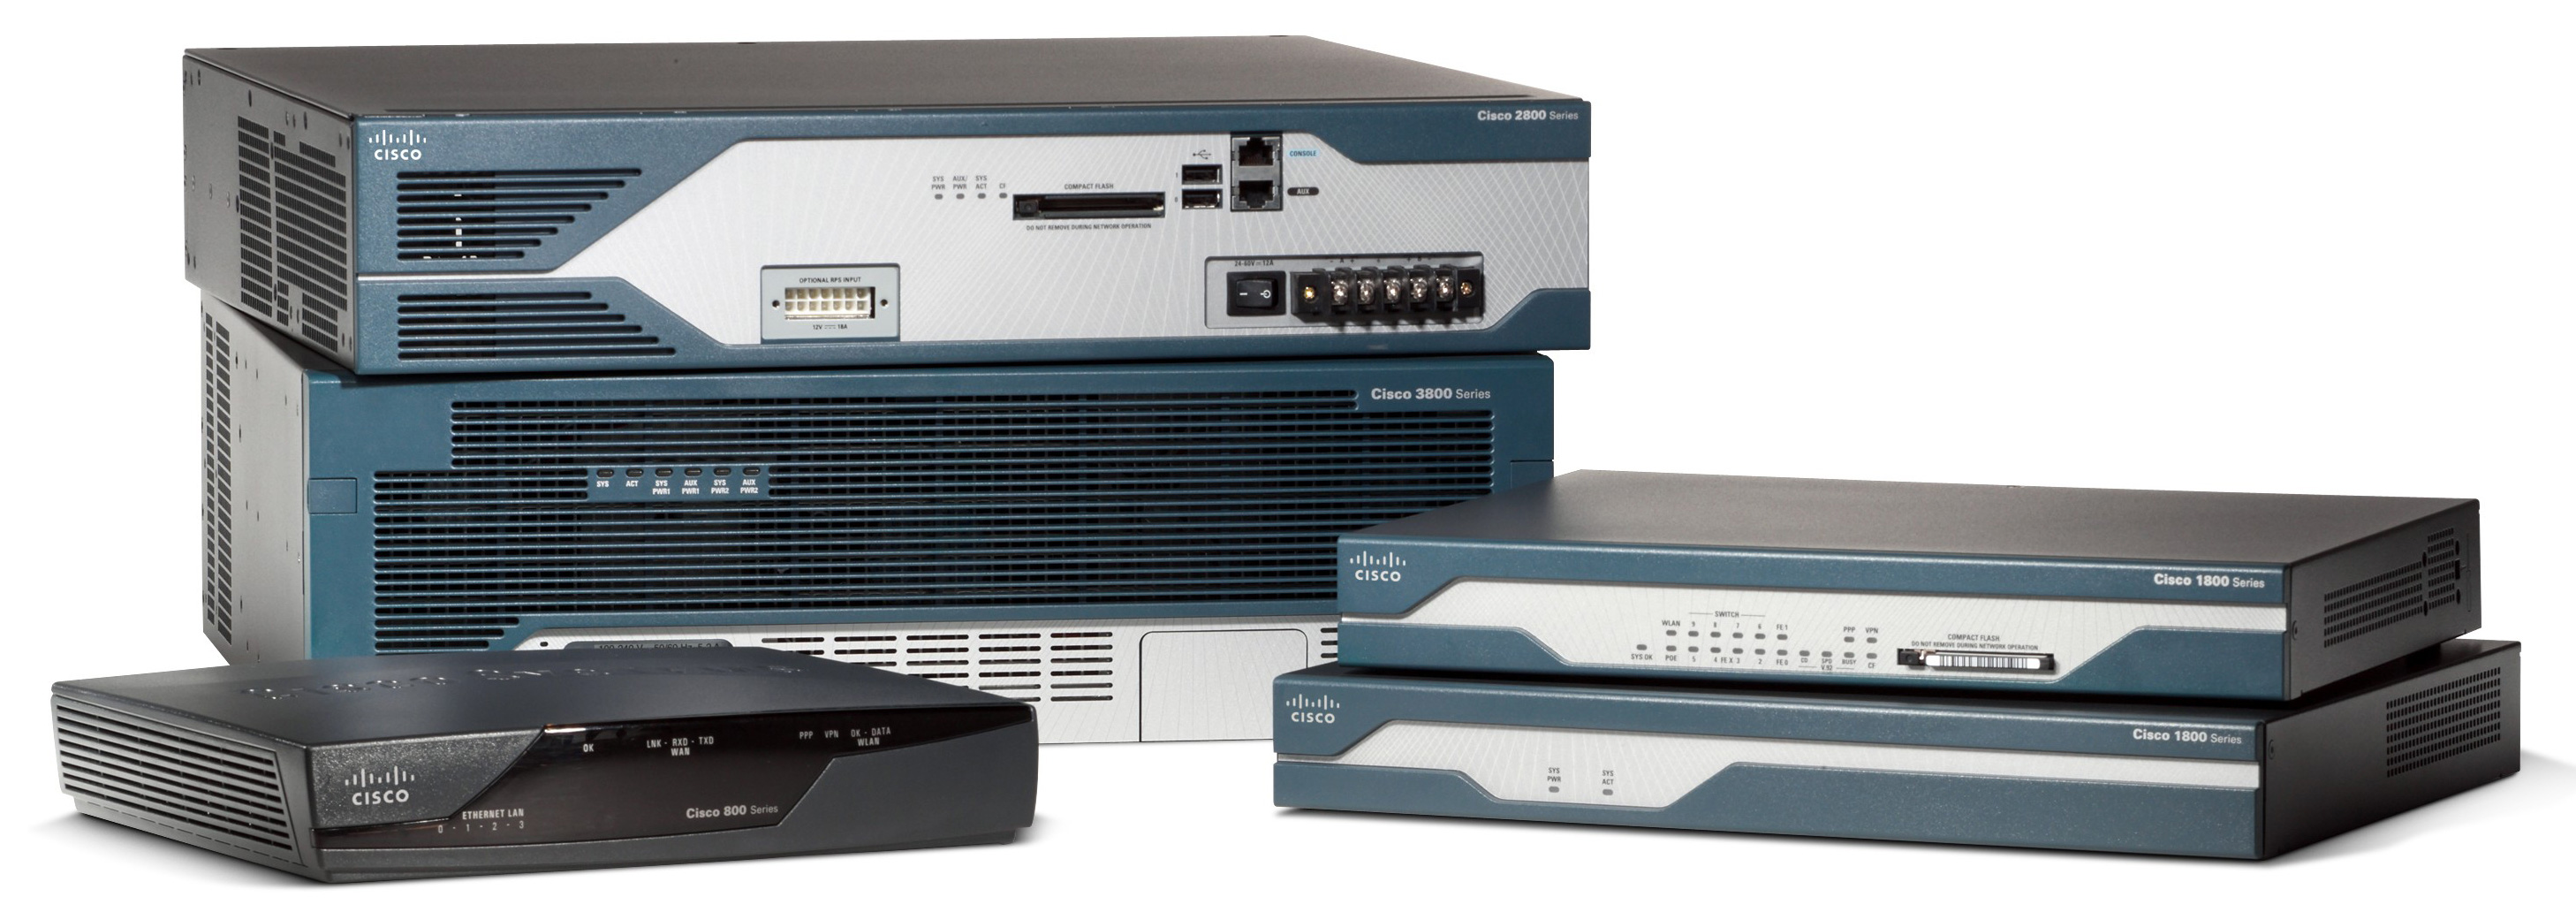 Router-switch. Com offers big discount on popular cisco products.